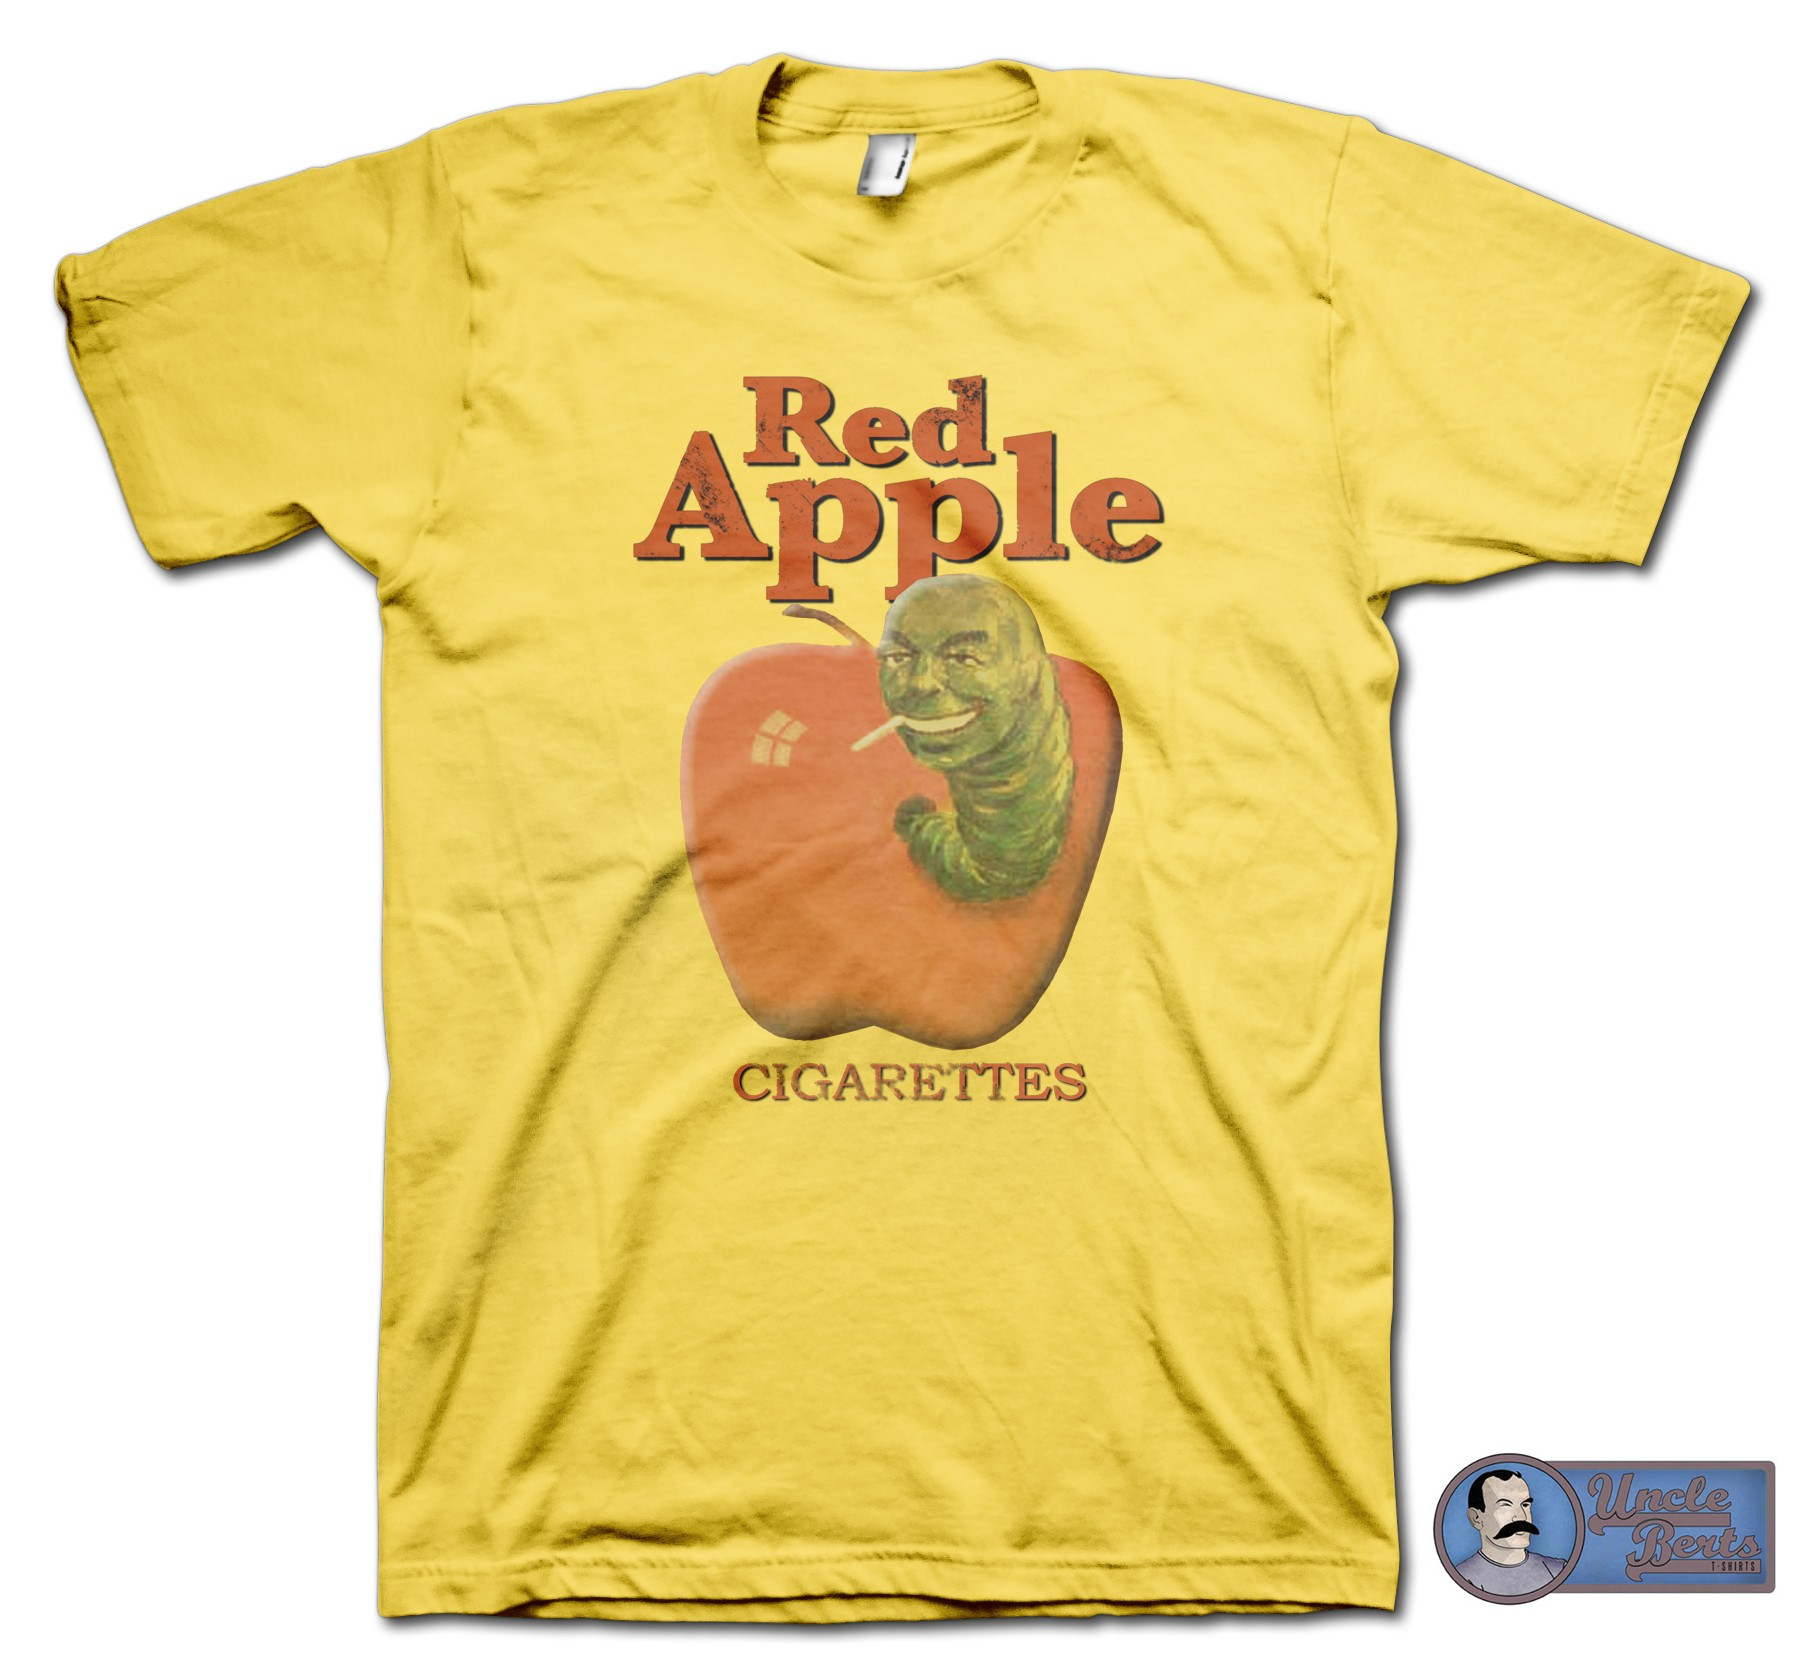 Pul Fiction (1994) inspired Red Apple Cigarettes T-Shirt